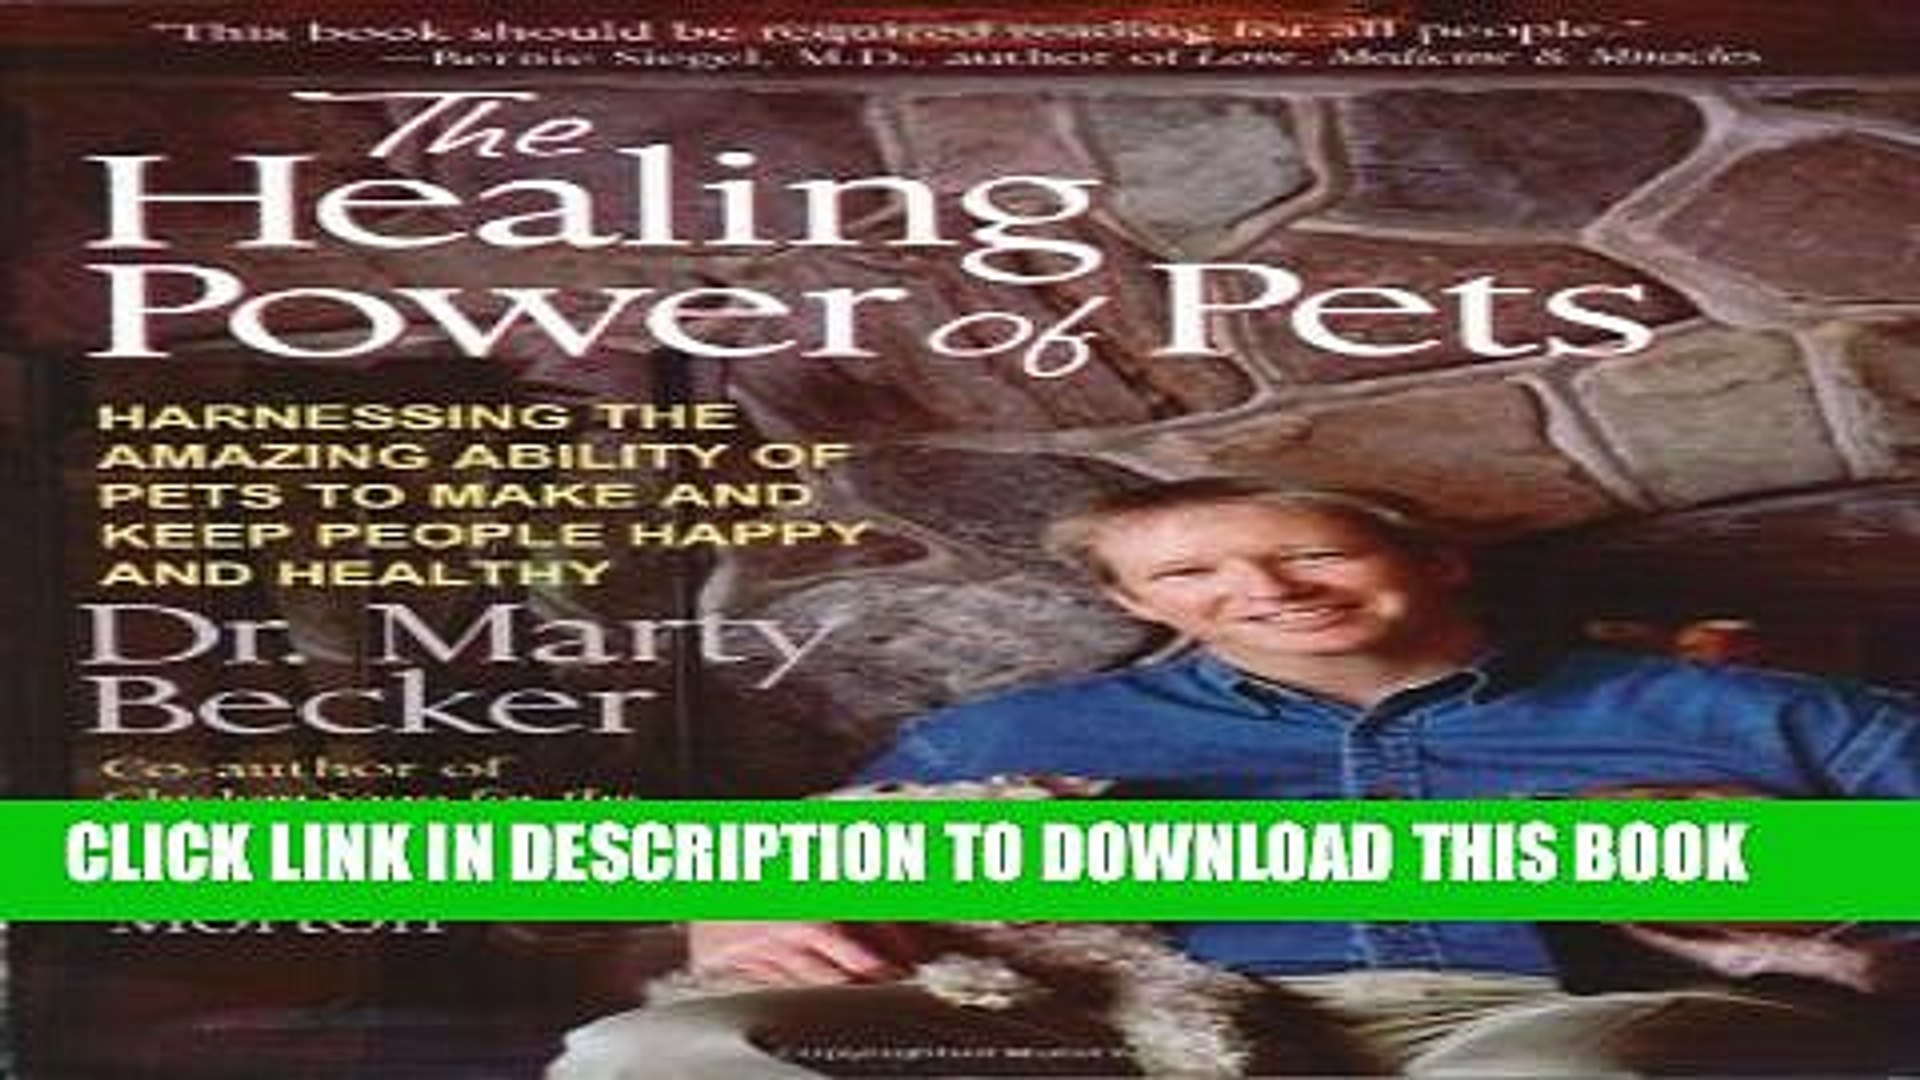 [PDF] The Healing Power of Pets: Harnessing the Amazing Ability of Pets to Make and Keep People